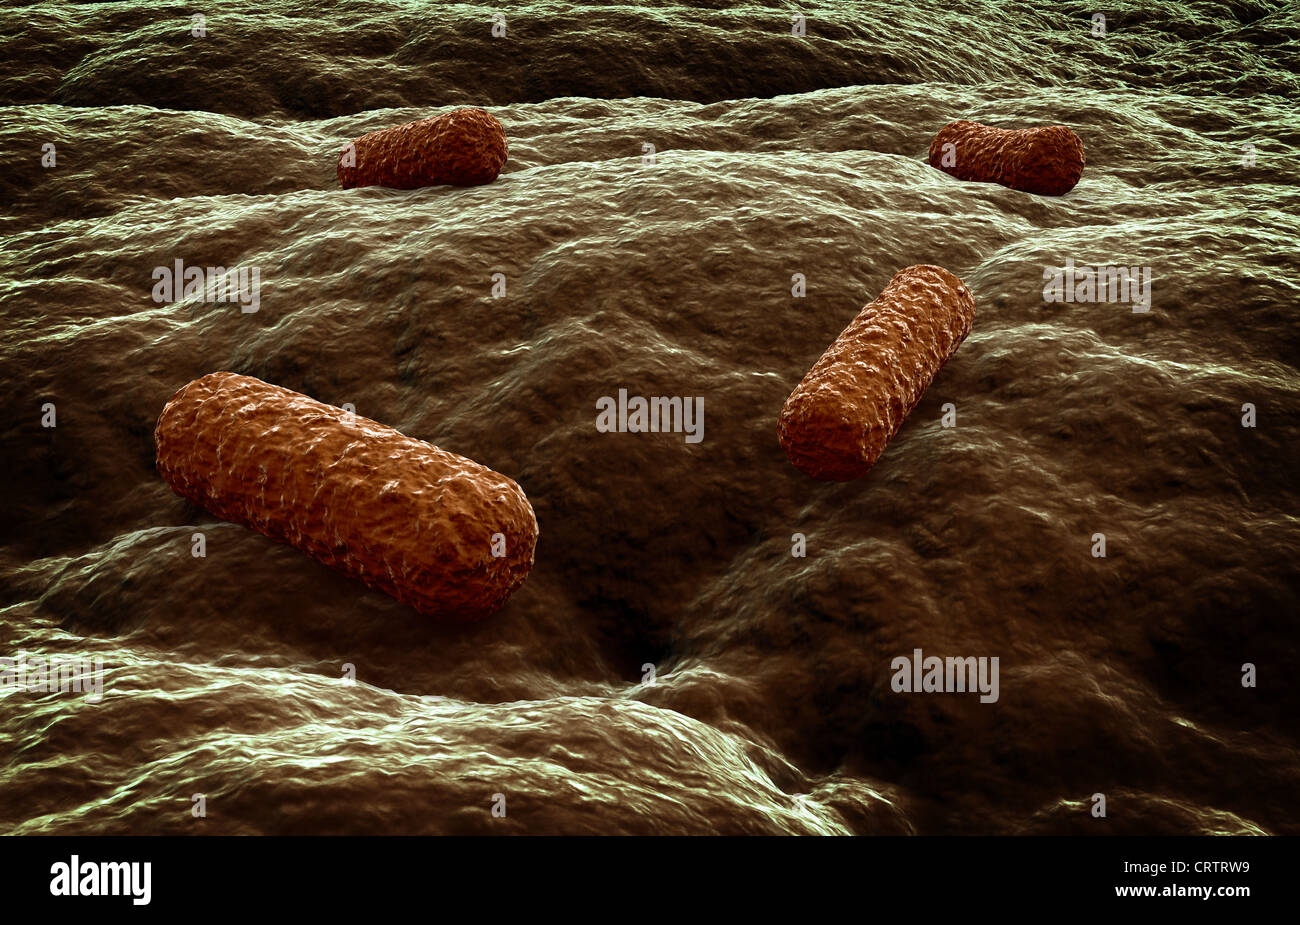 Microbes attacking a tissue - Stock Image